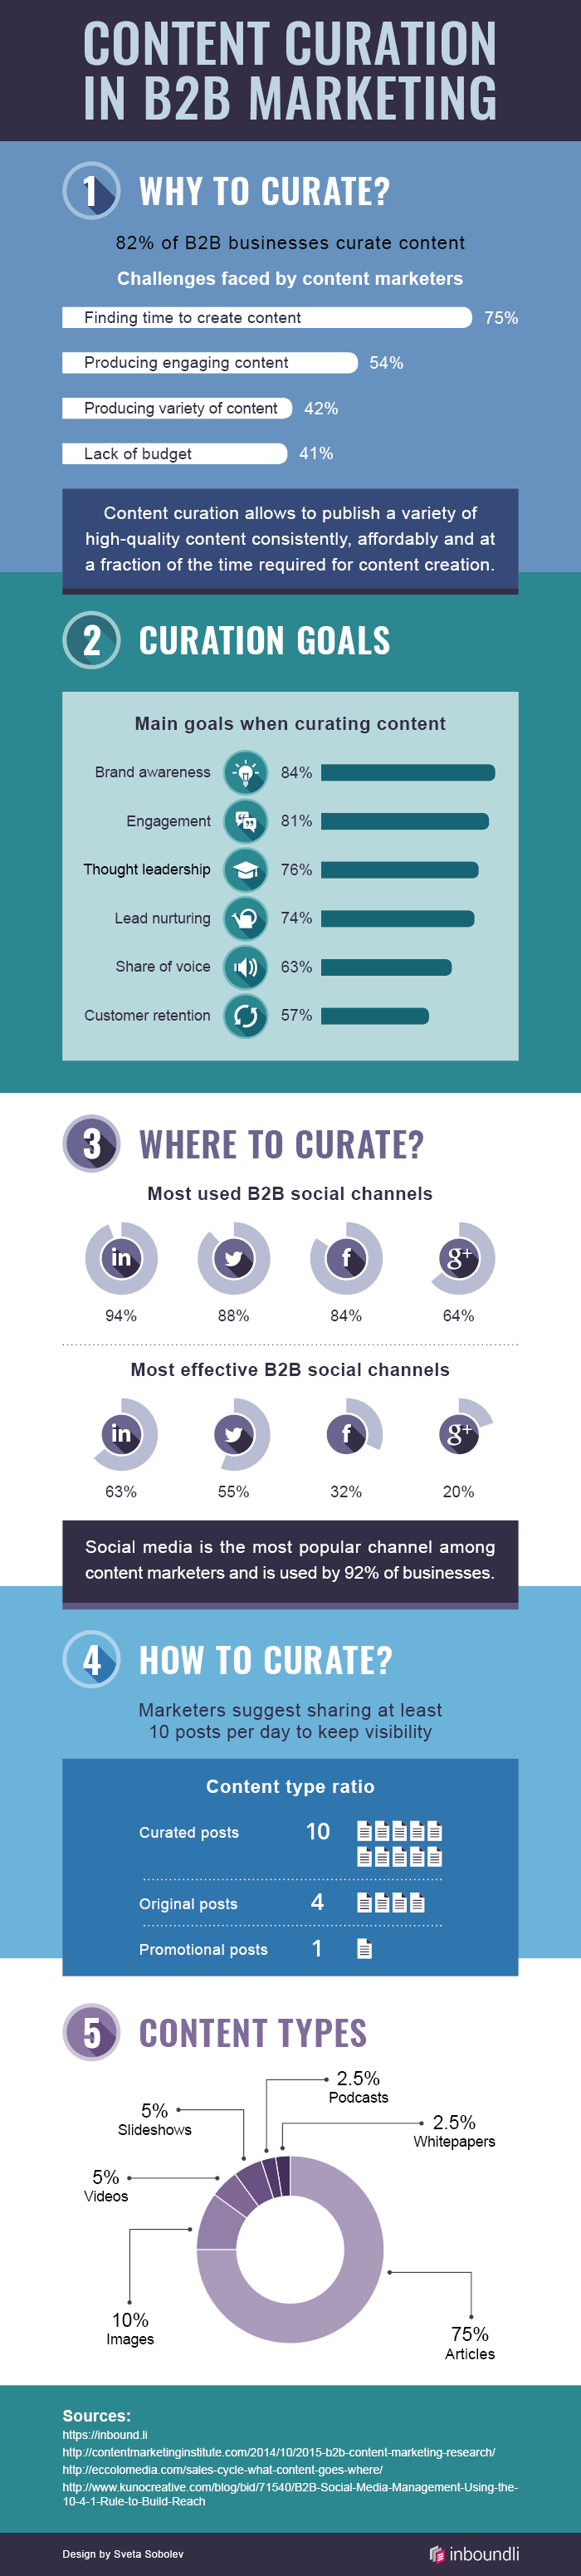 An infographic about the content curation in B2B marketing